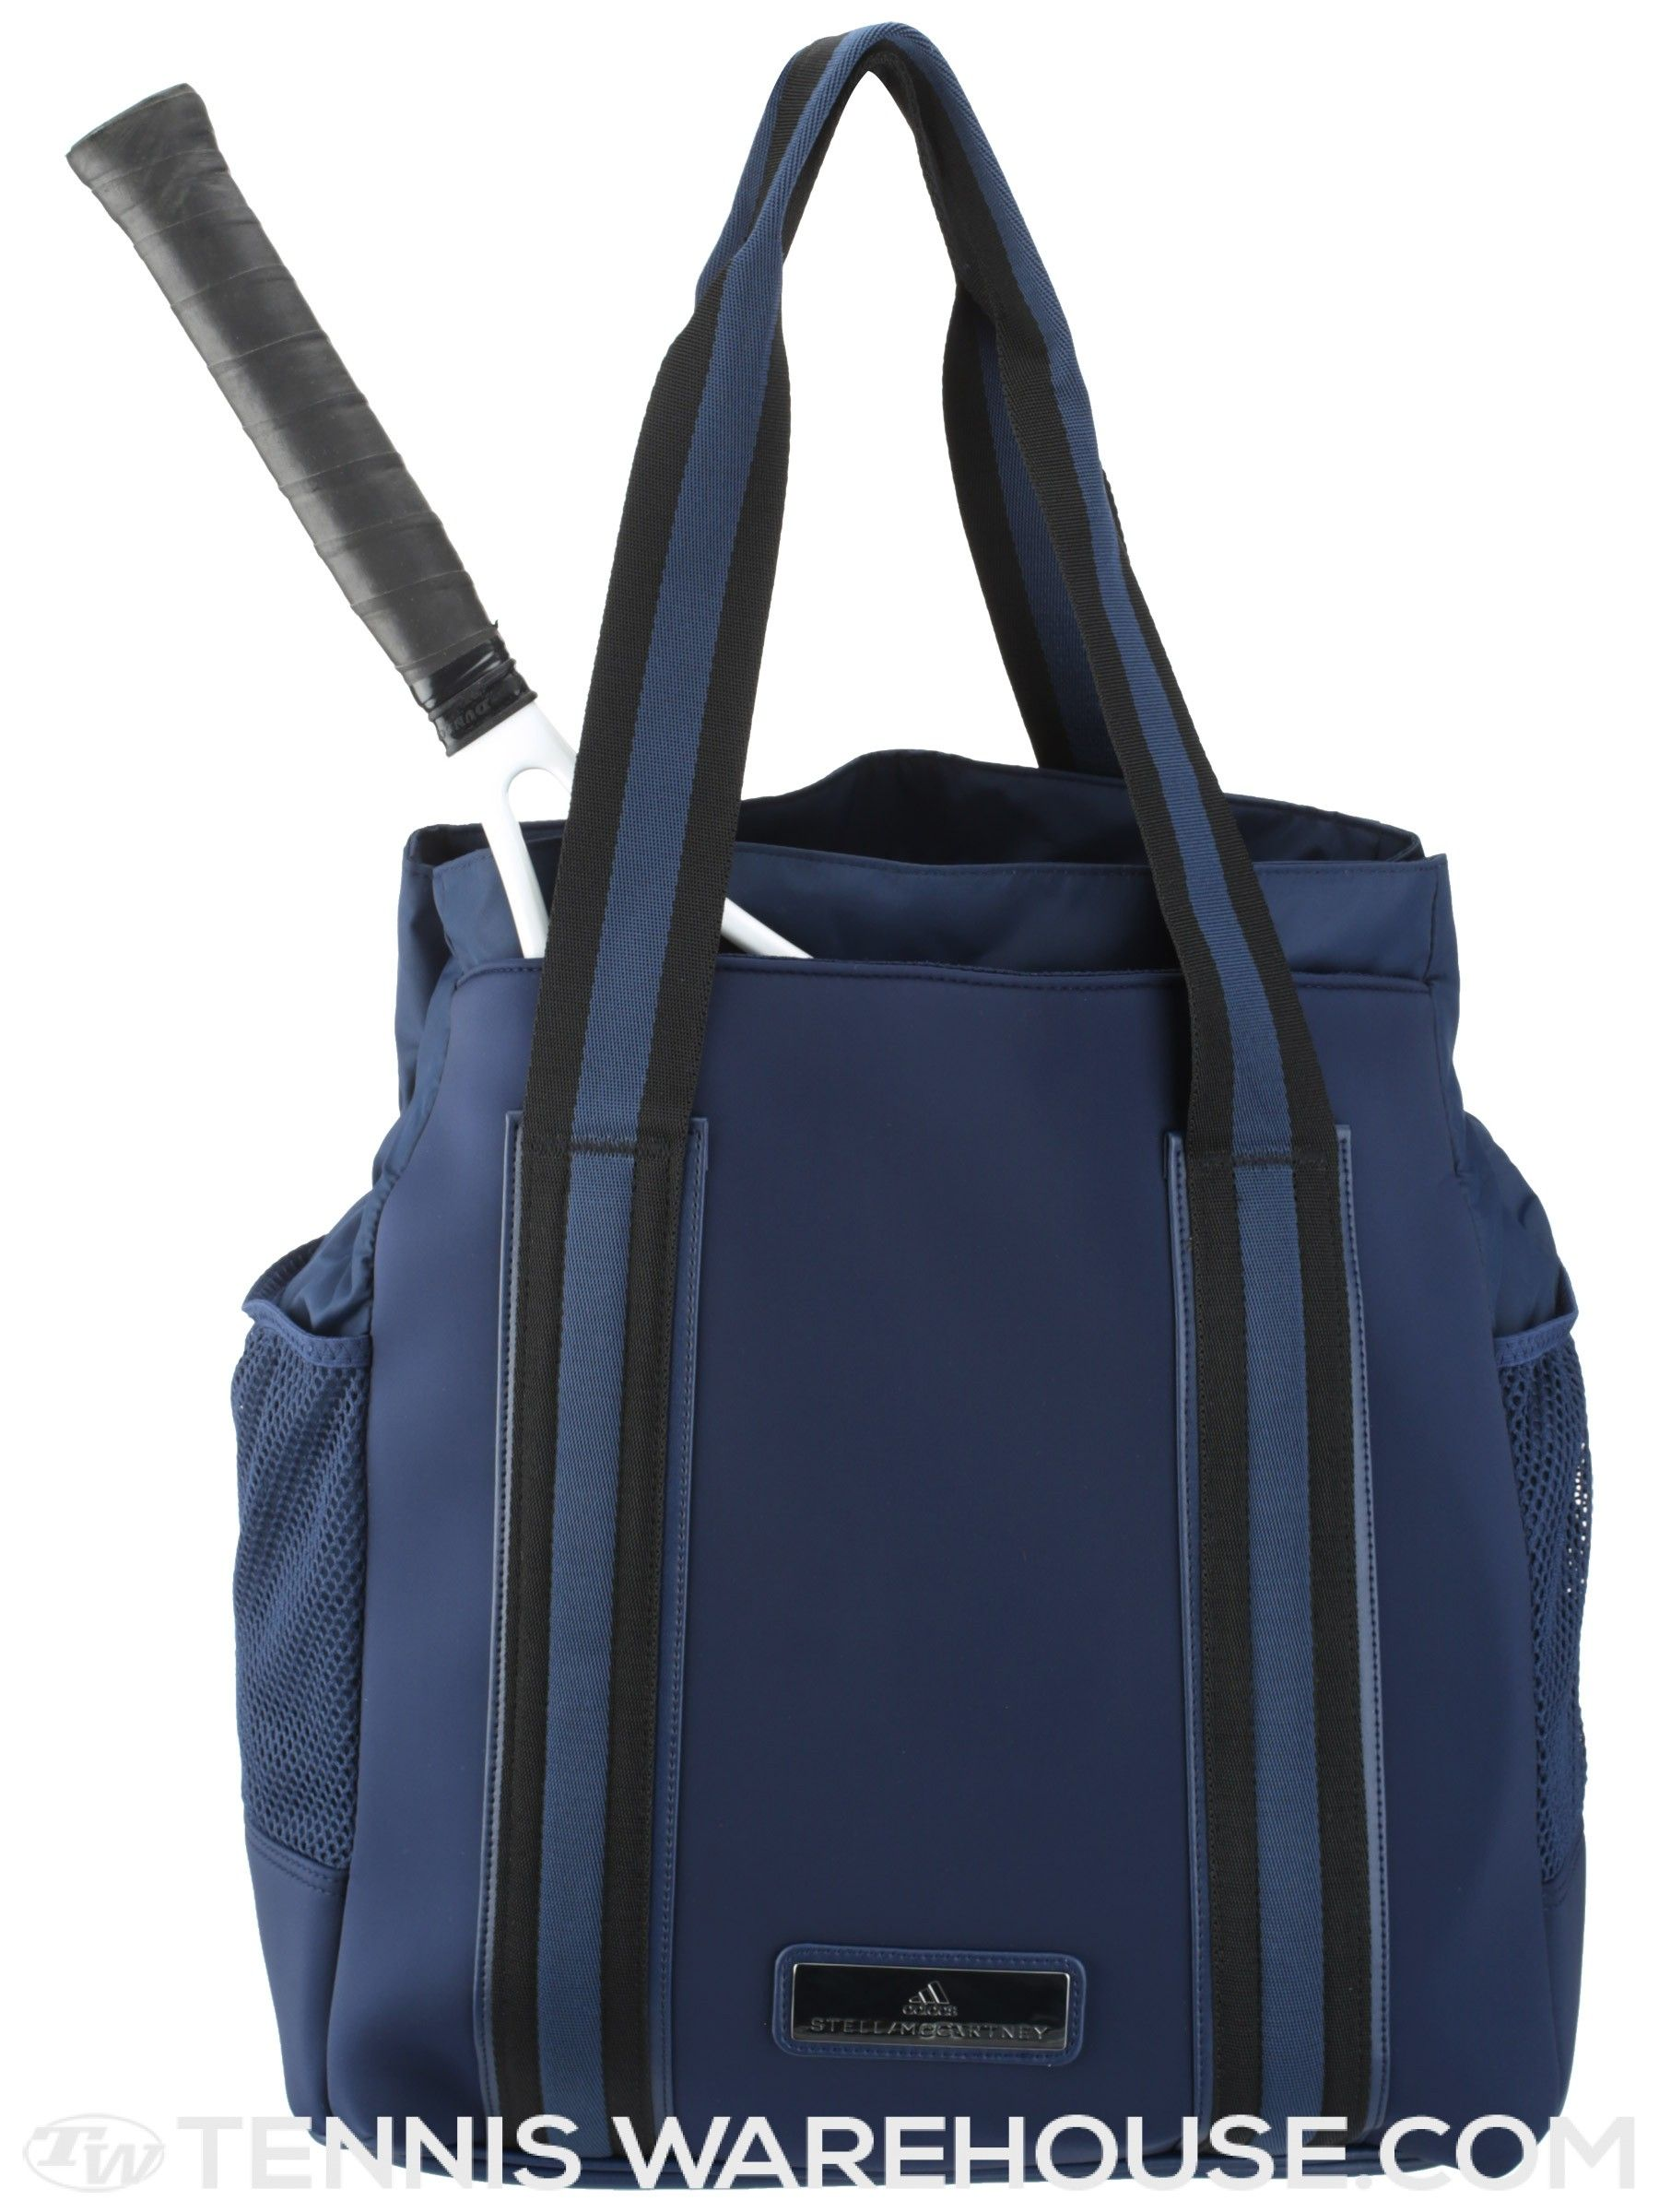 adidas Spring Stella McCartney Bag Navy Stella Mccartney Tennis, Tennis Bag,  Tennis Equipment, c4b9853a29